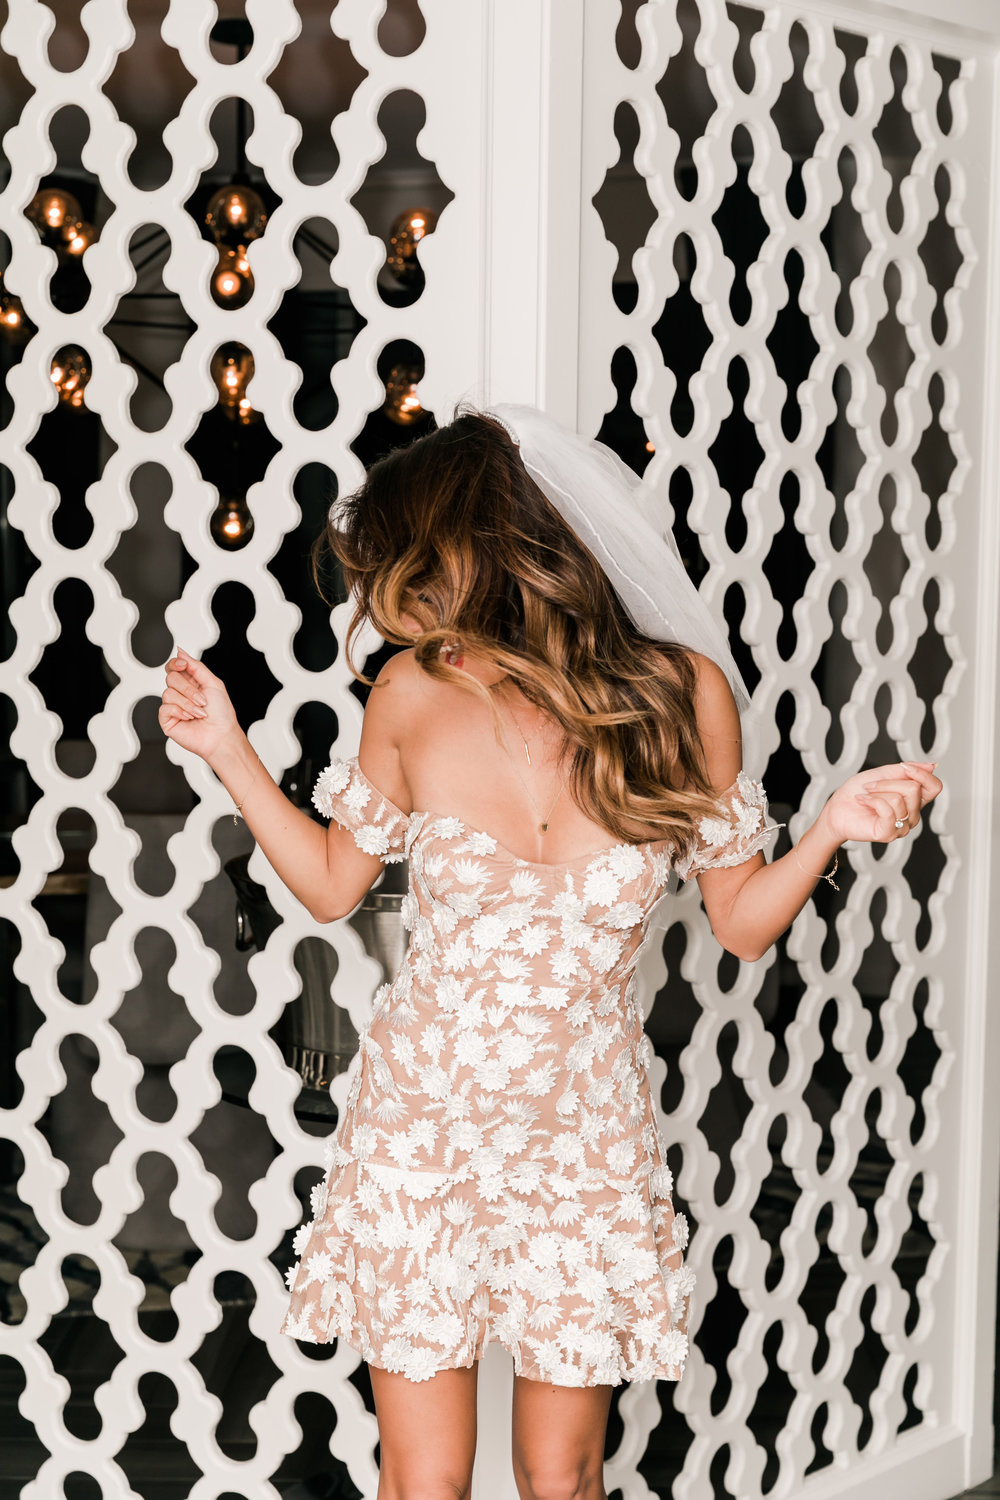 Bachelorette Party Dress Ideas - Everyday Pursuits